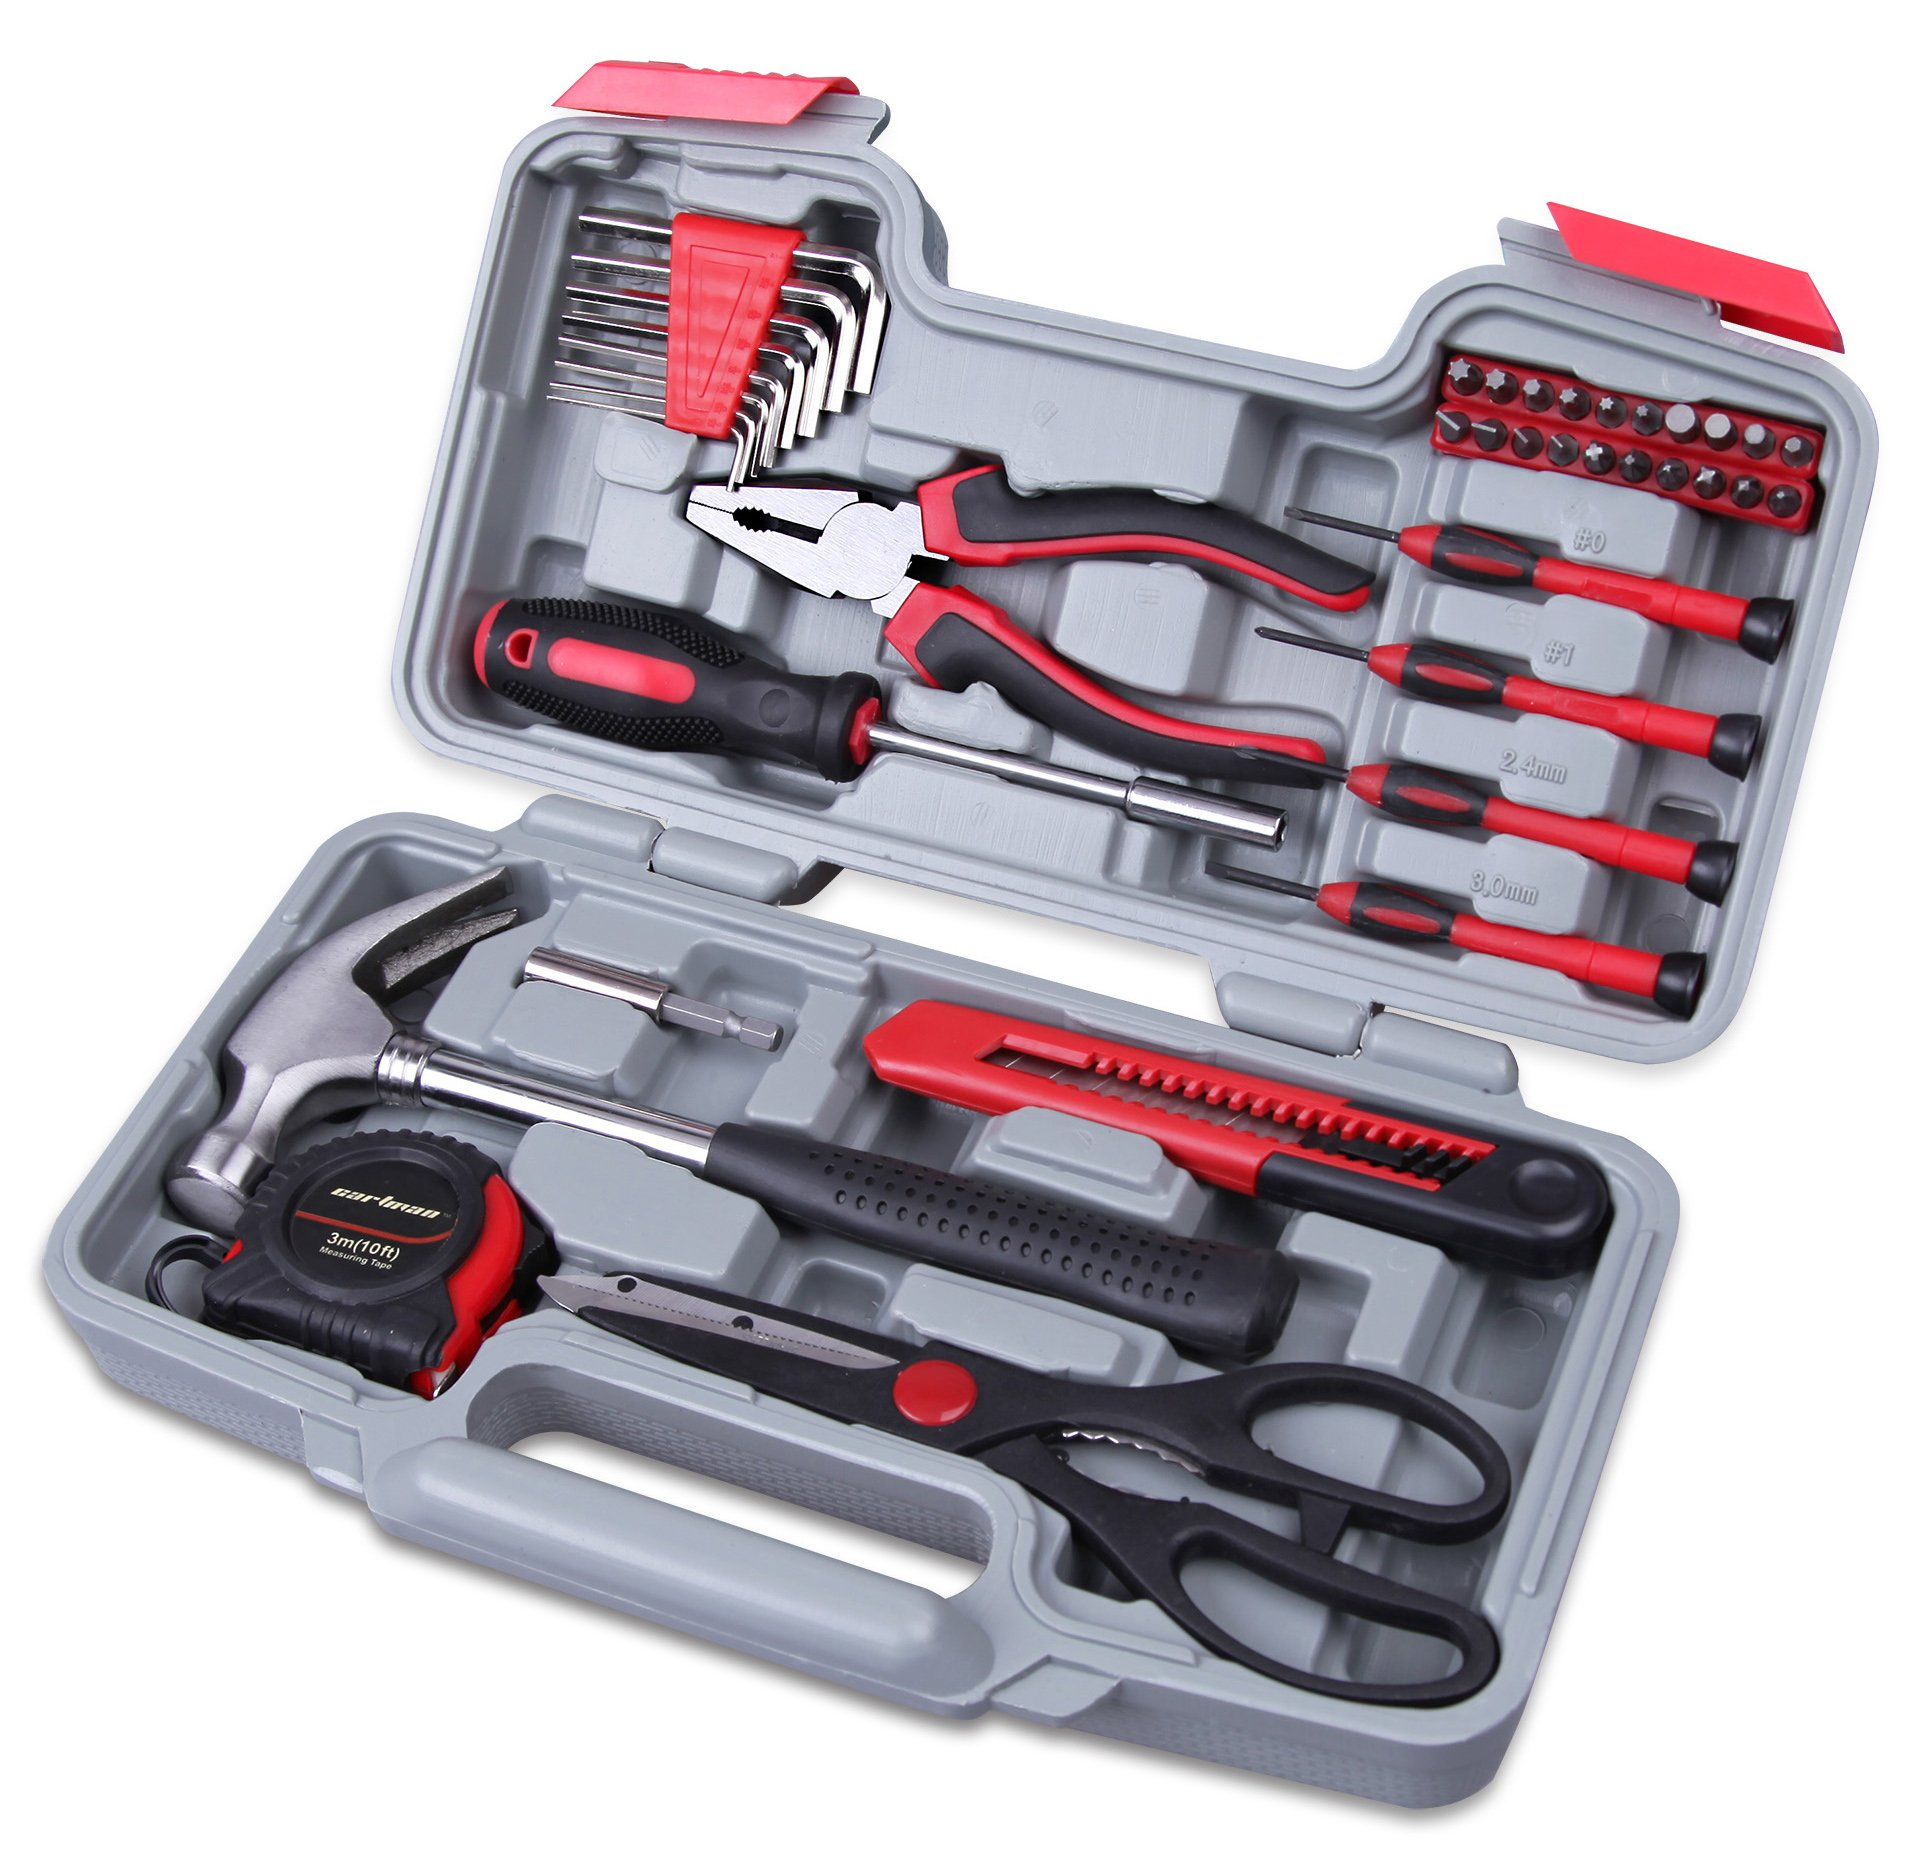 CARTMAN Red 39-Piece Cutting Plier Tool Set - General Household Hand Tool Kit with Plastic Toolbox Storage Case by CARTMAN